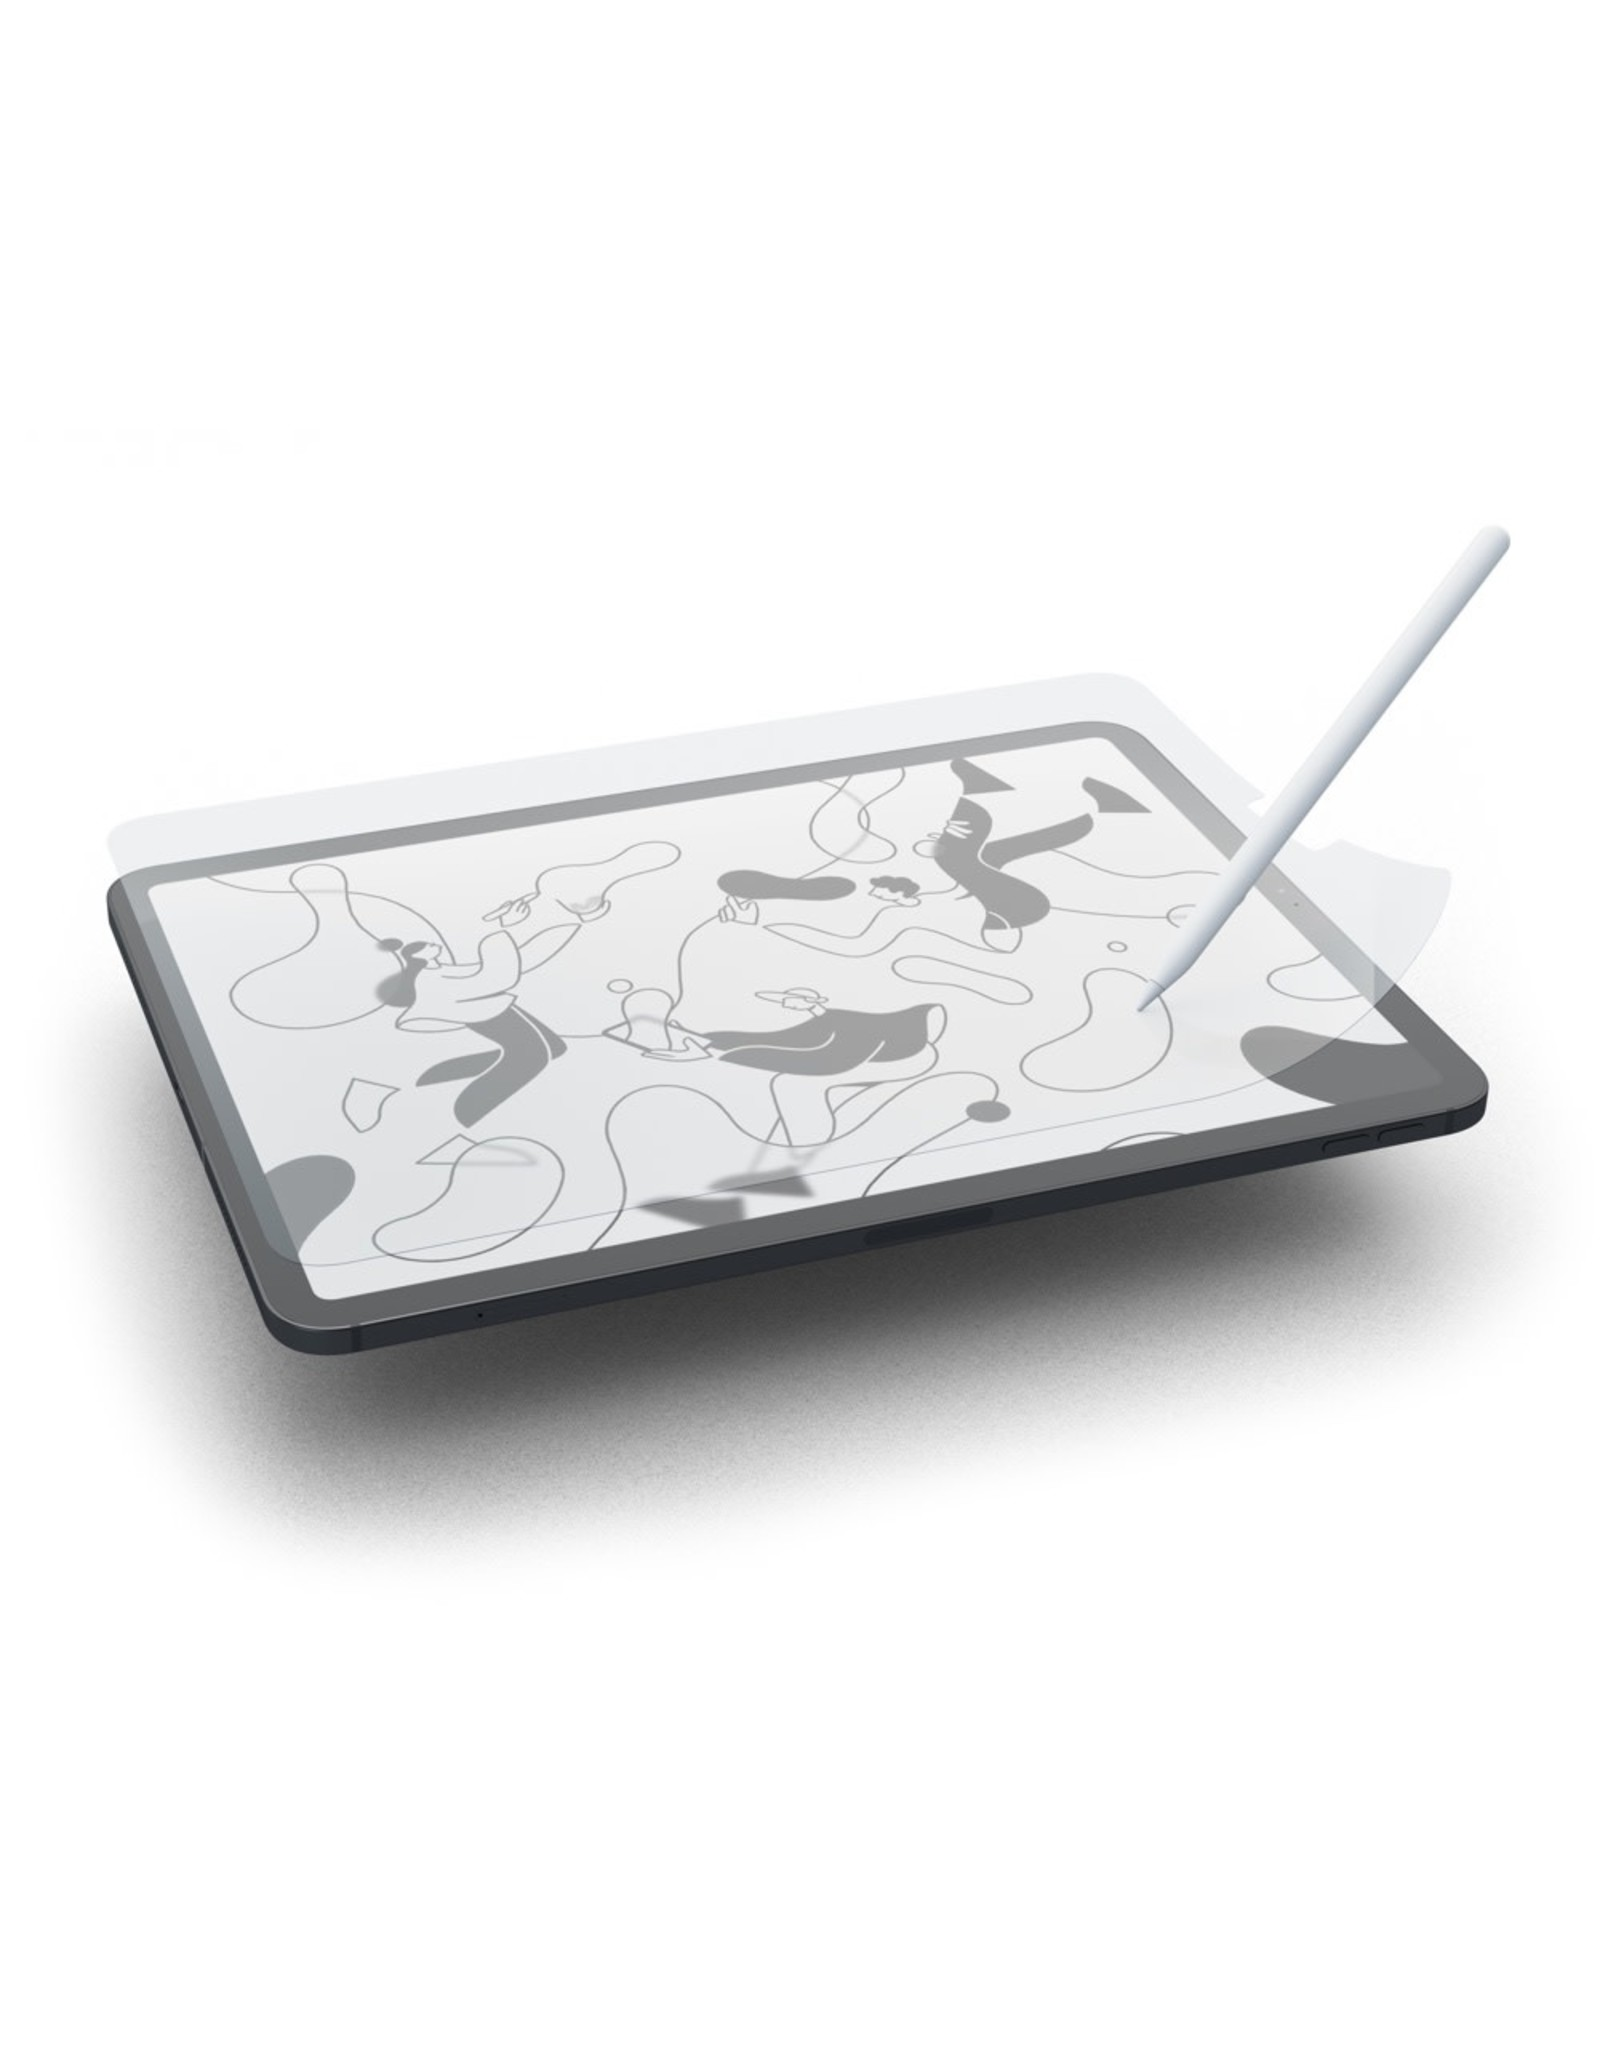 """Paperlike Paperlike Screen Protector for Writing & Drawing - iPad 10.2"""" (2019) (x2 pack)"""